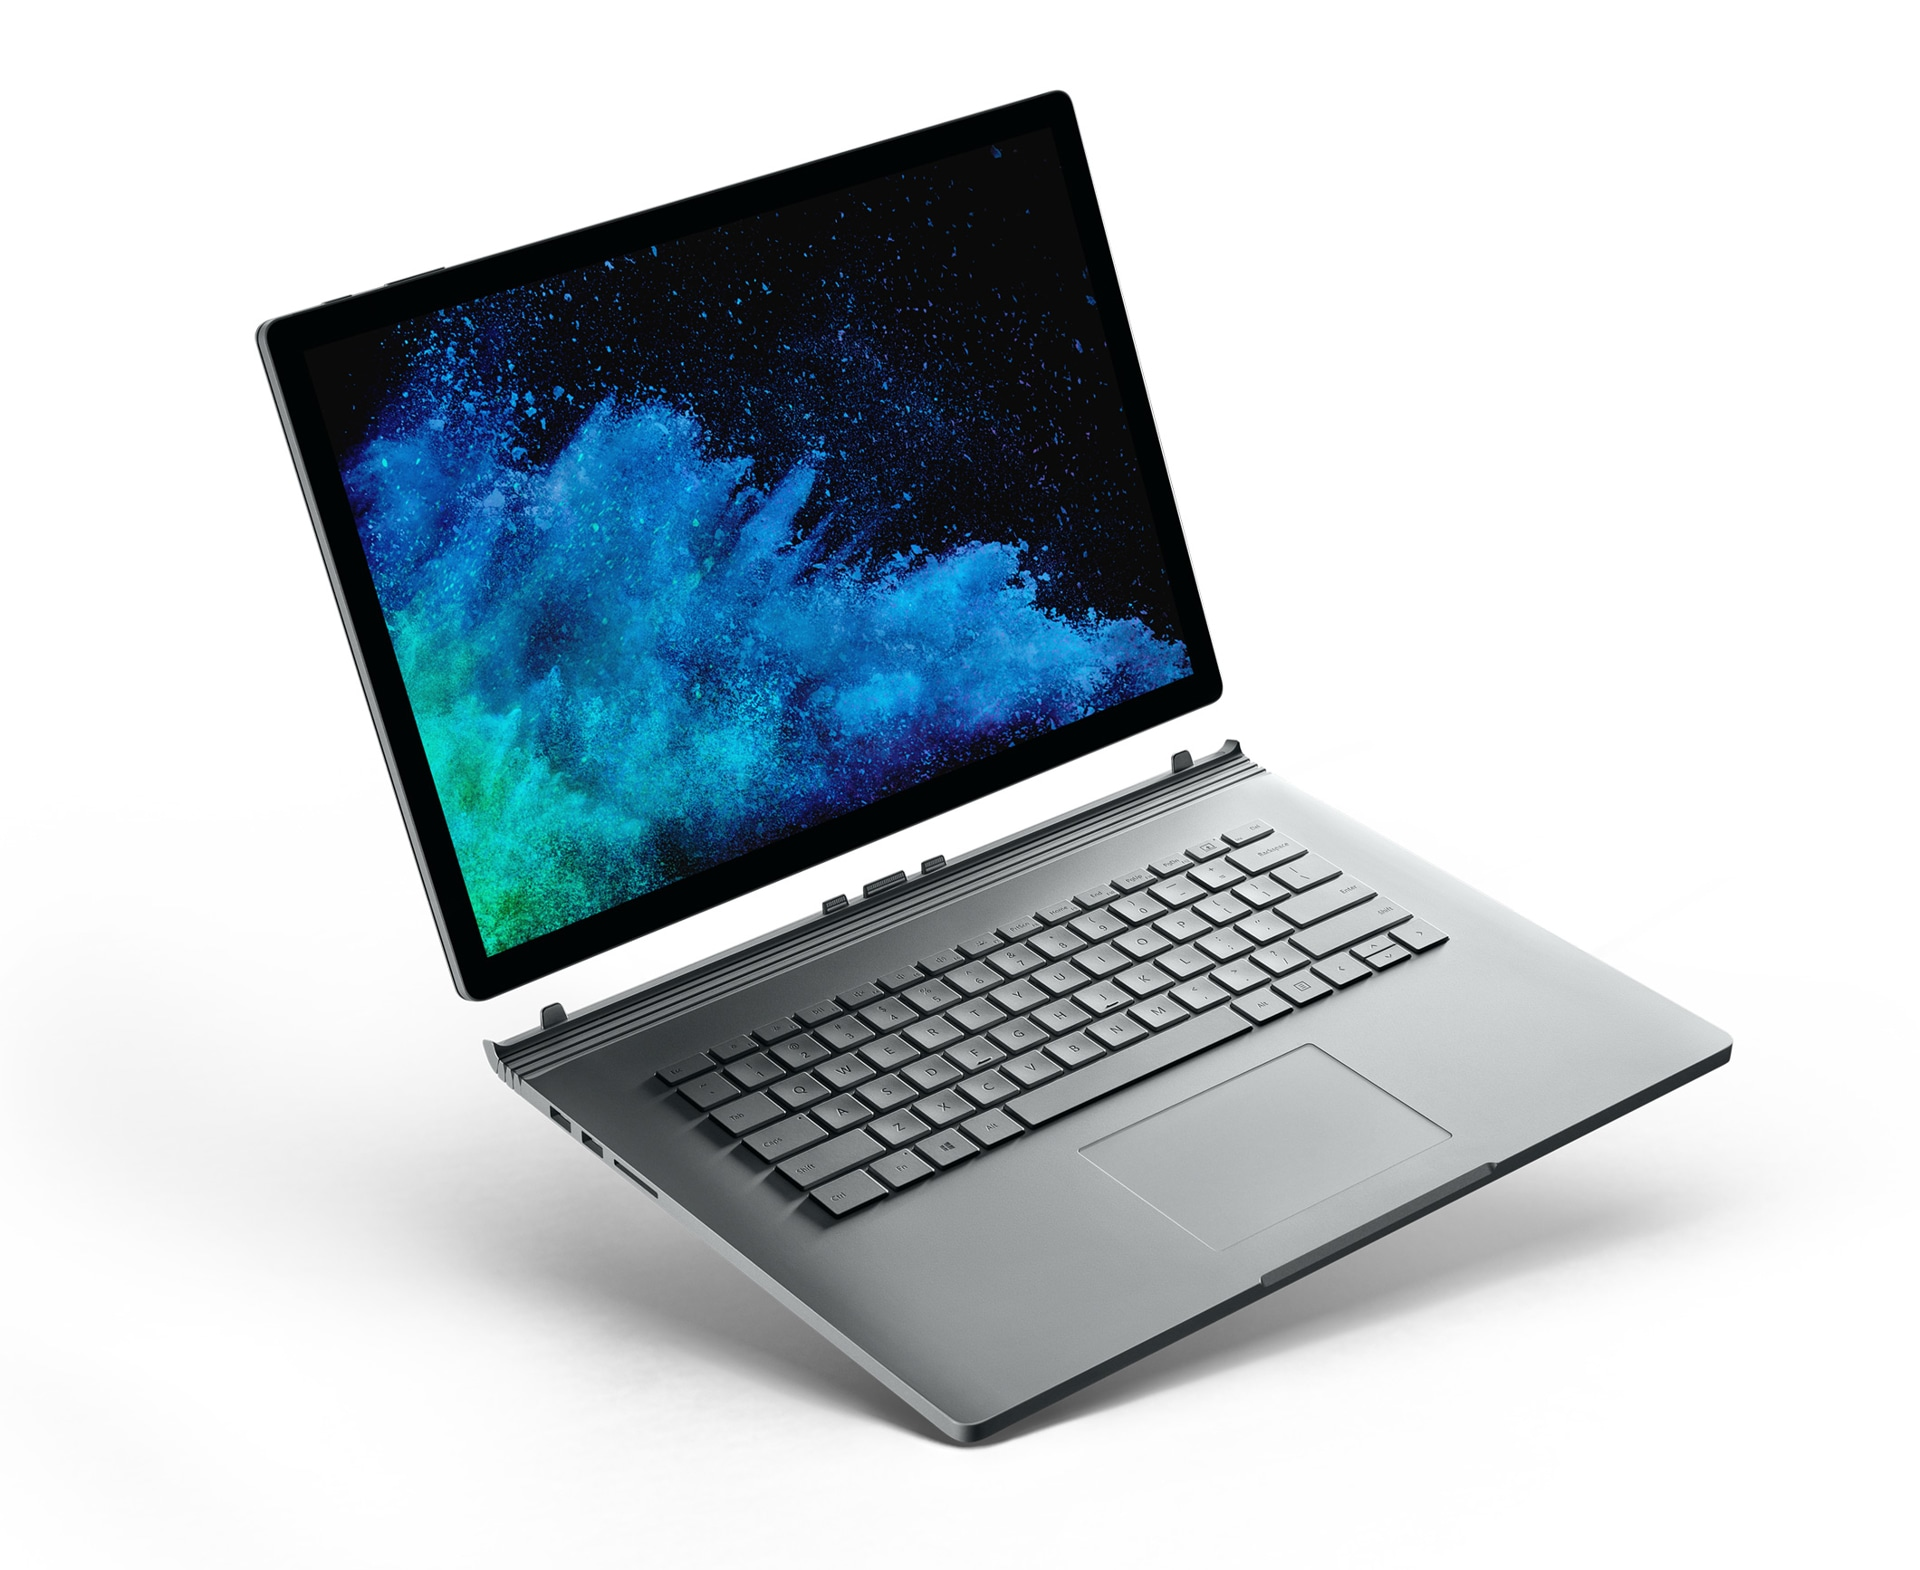 Surface Book 2 con la pantalla desconectada